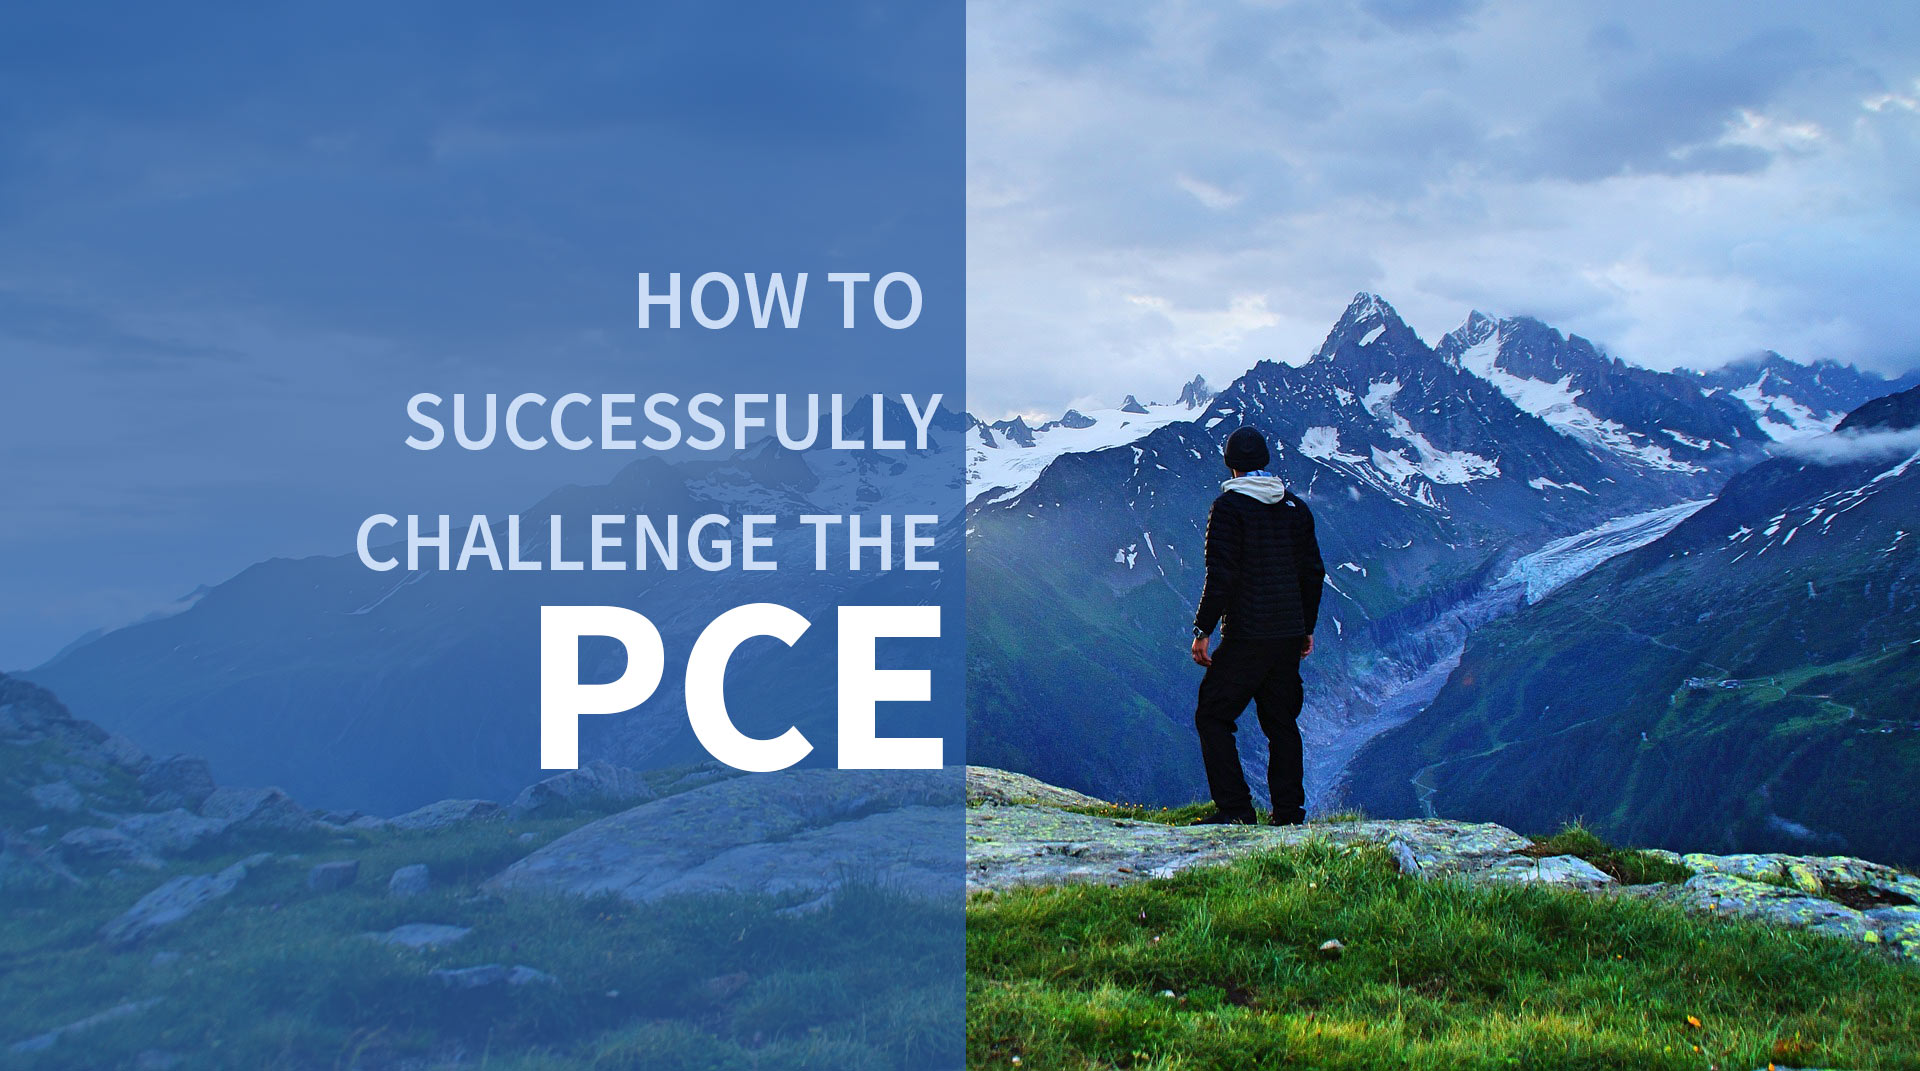 how to successfully challenge the pce